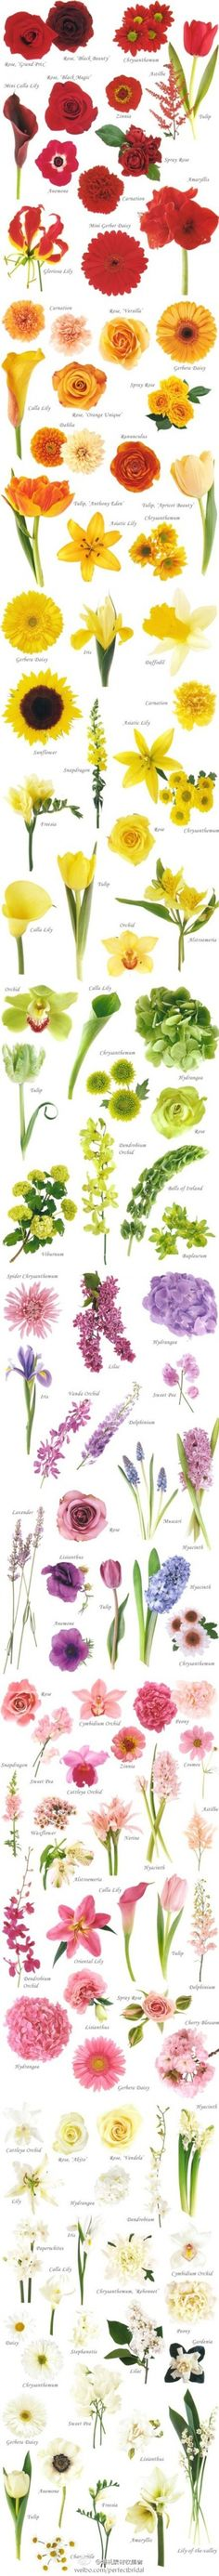 A flower chart... just in case we didn't have enough options to choose from.